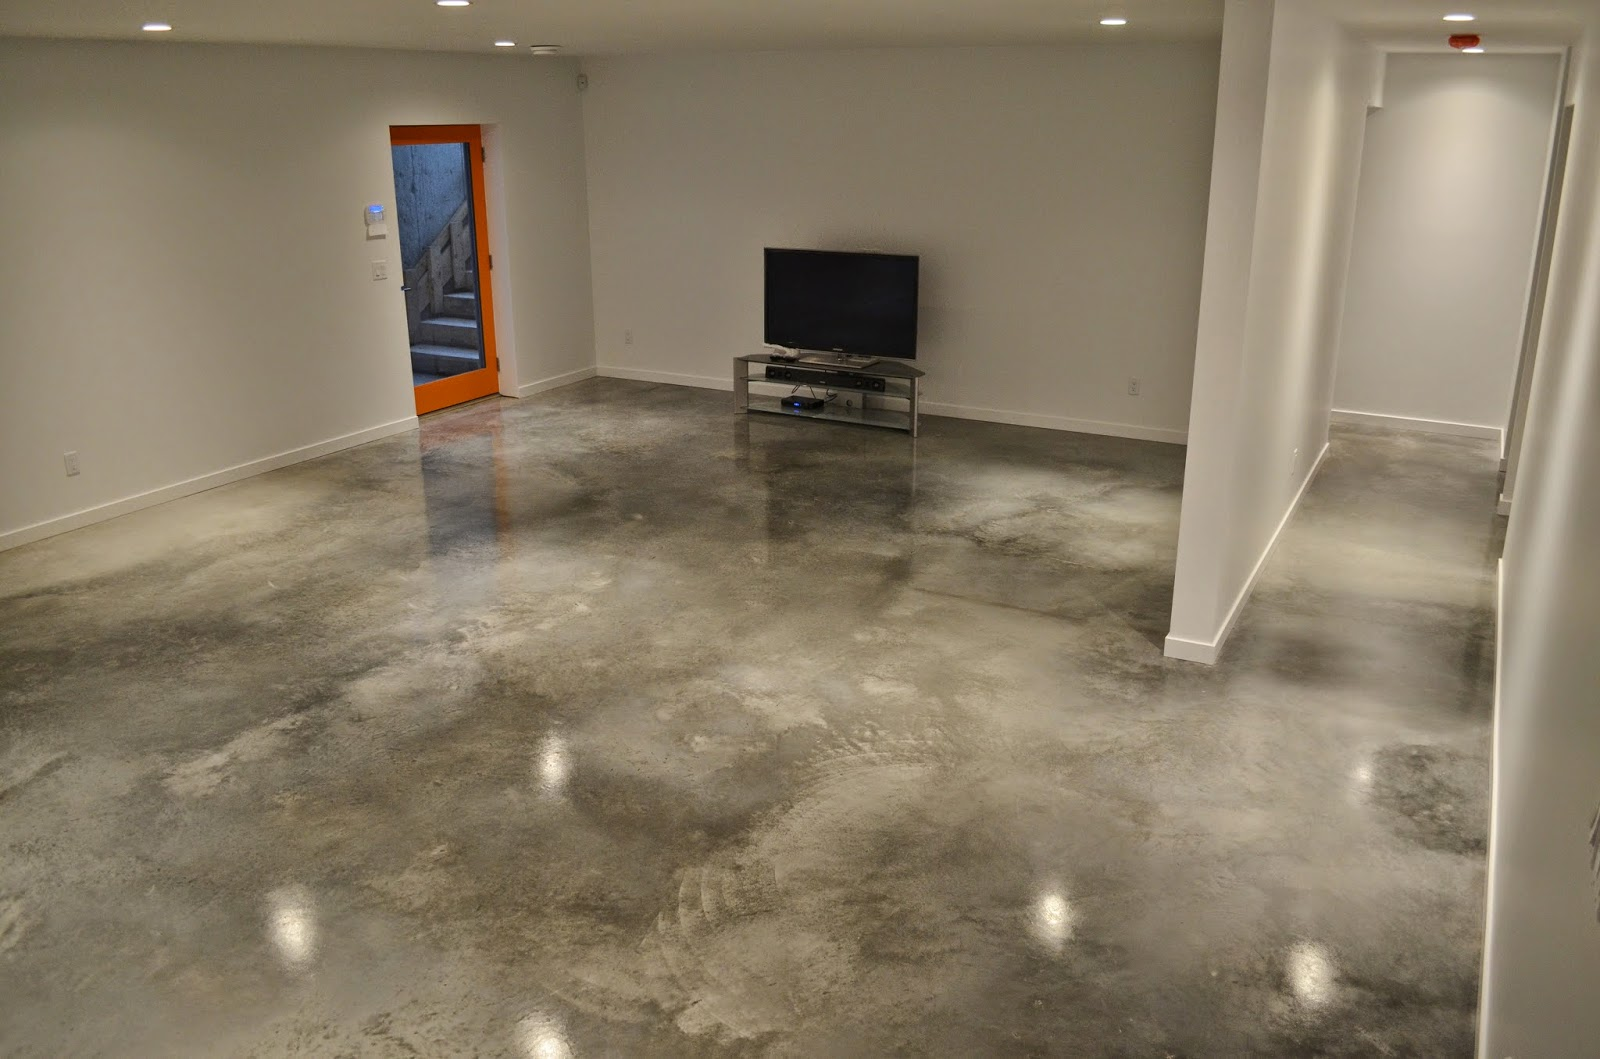 MODE CONCRETE: Cool and Modern Concrete Floors - by MODE ...